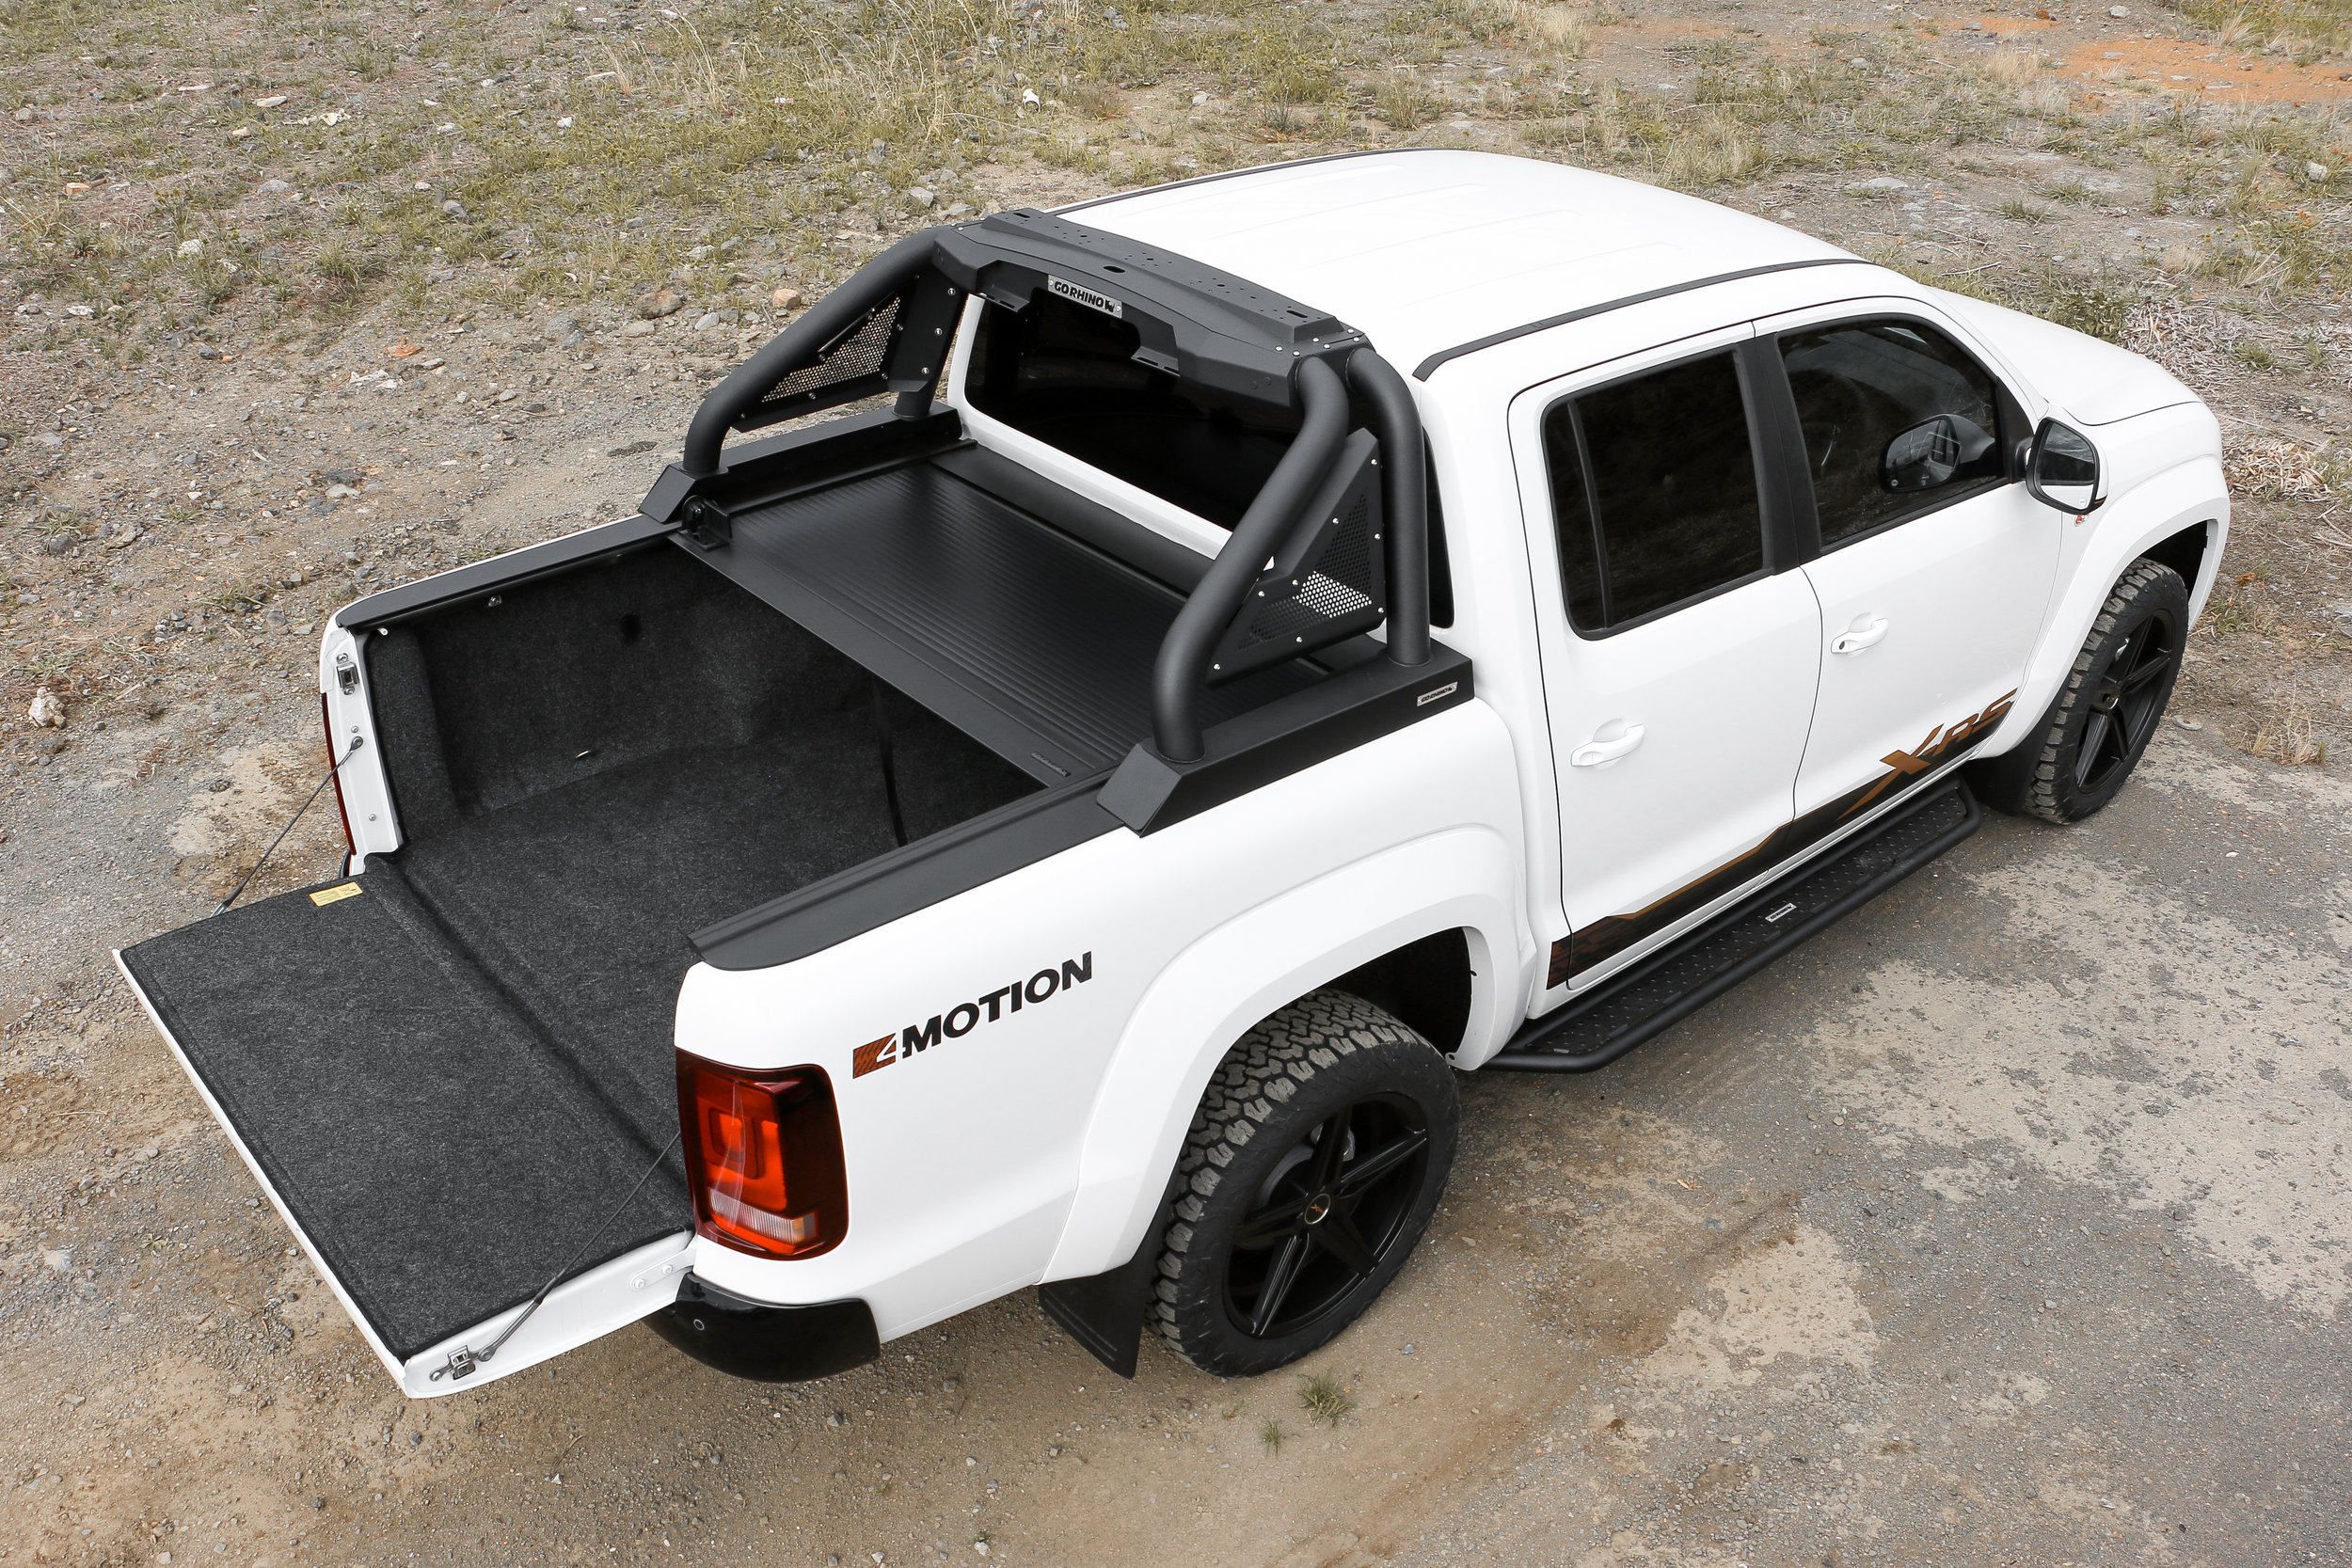 2019 VW Amarok with X-RS package, rear tray pack (without lights) and sports pack